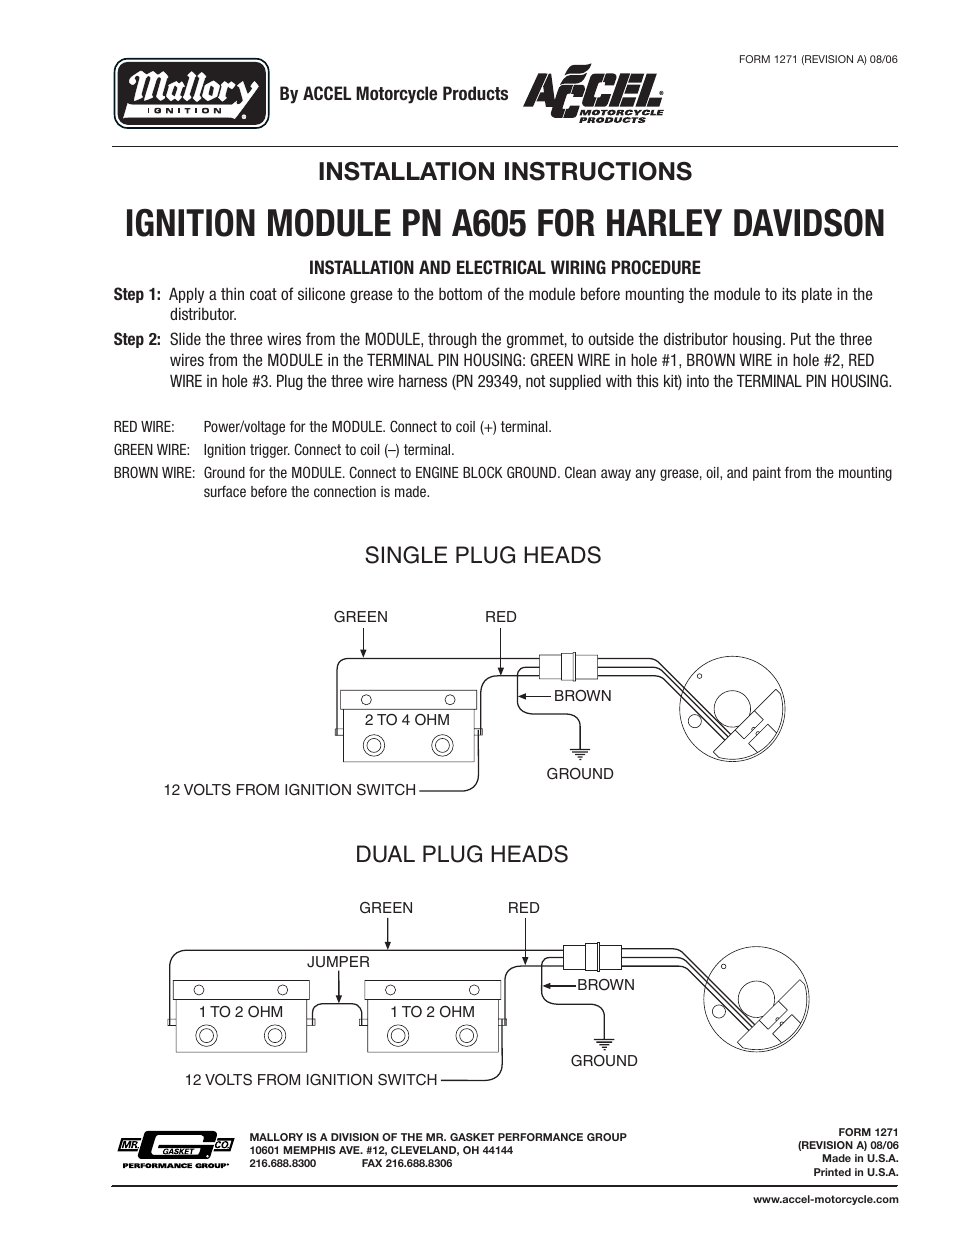 mallory ignition module wiring diagram efcaviation